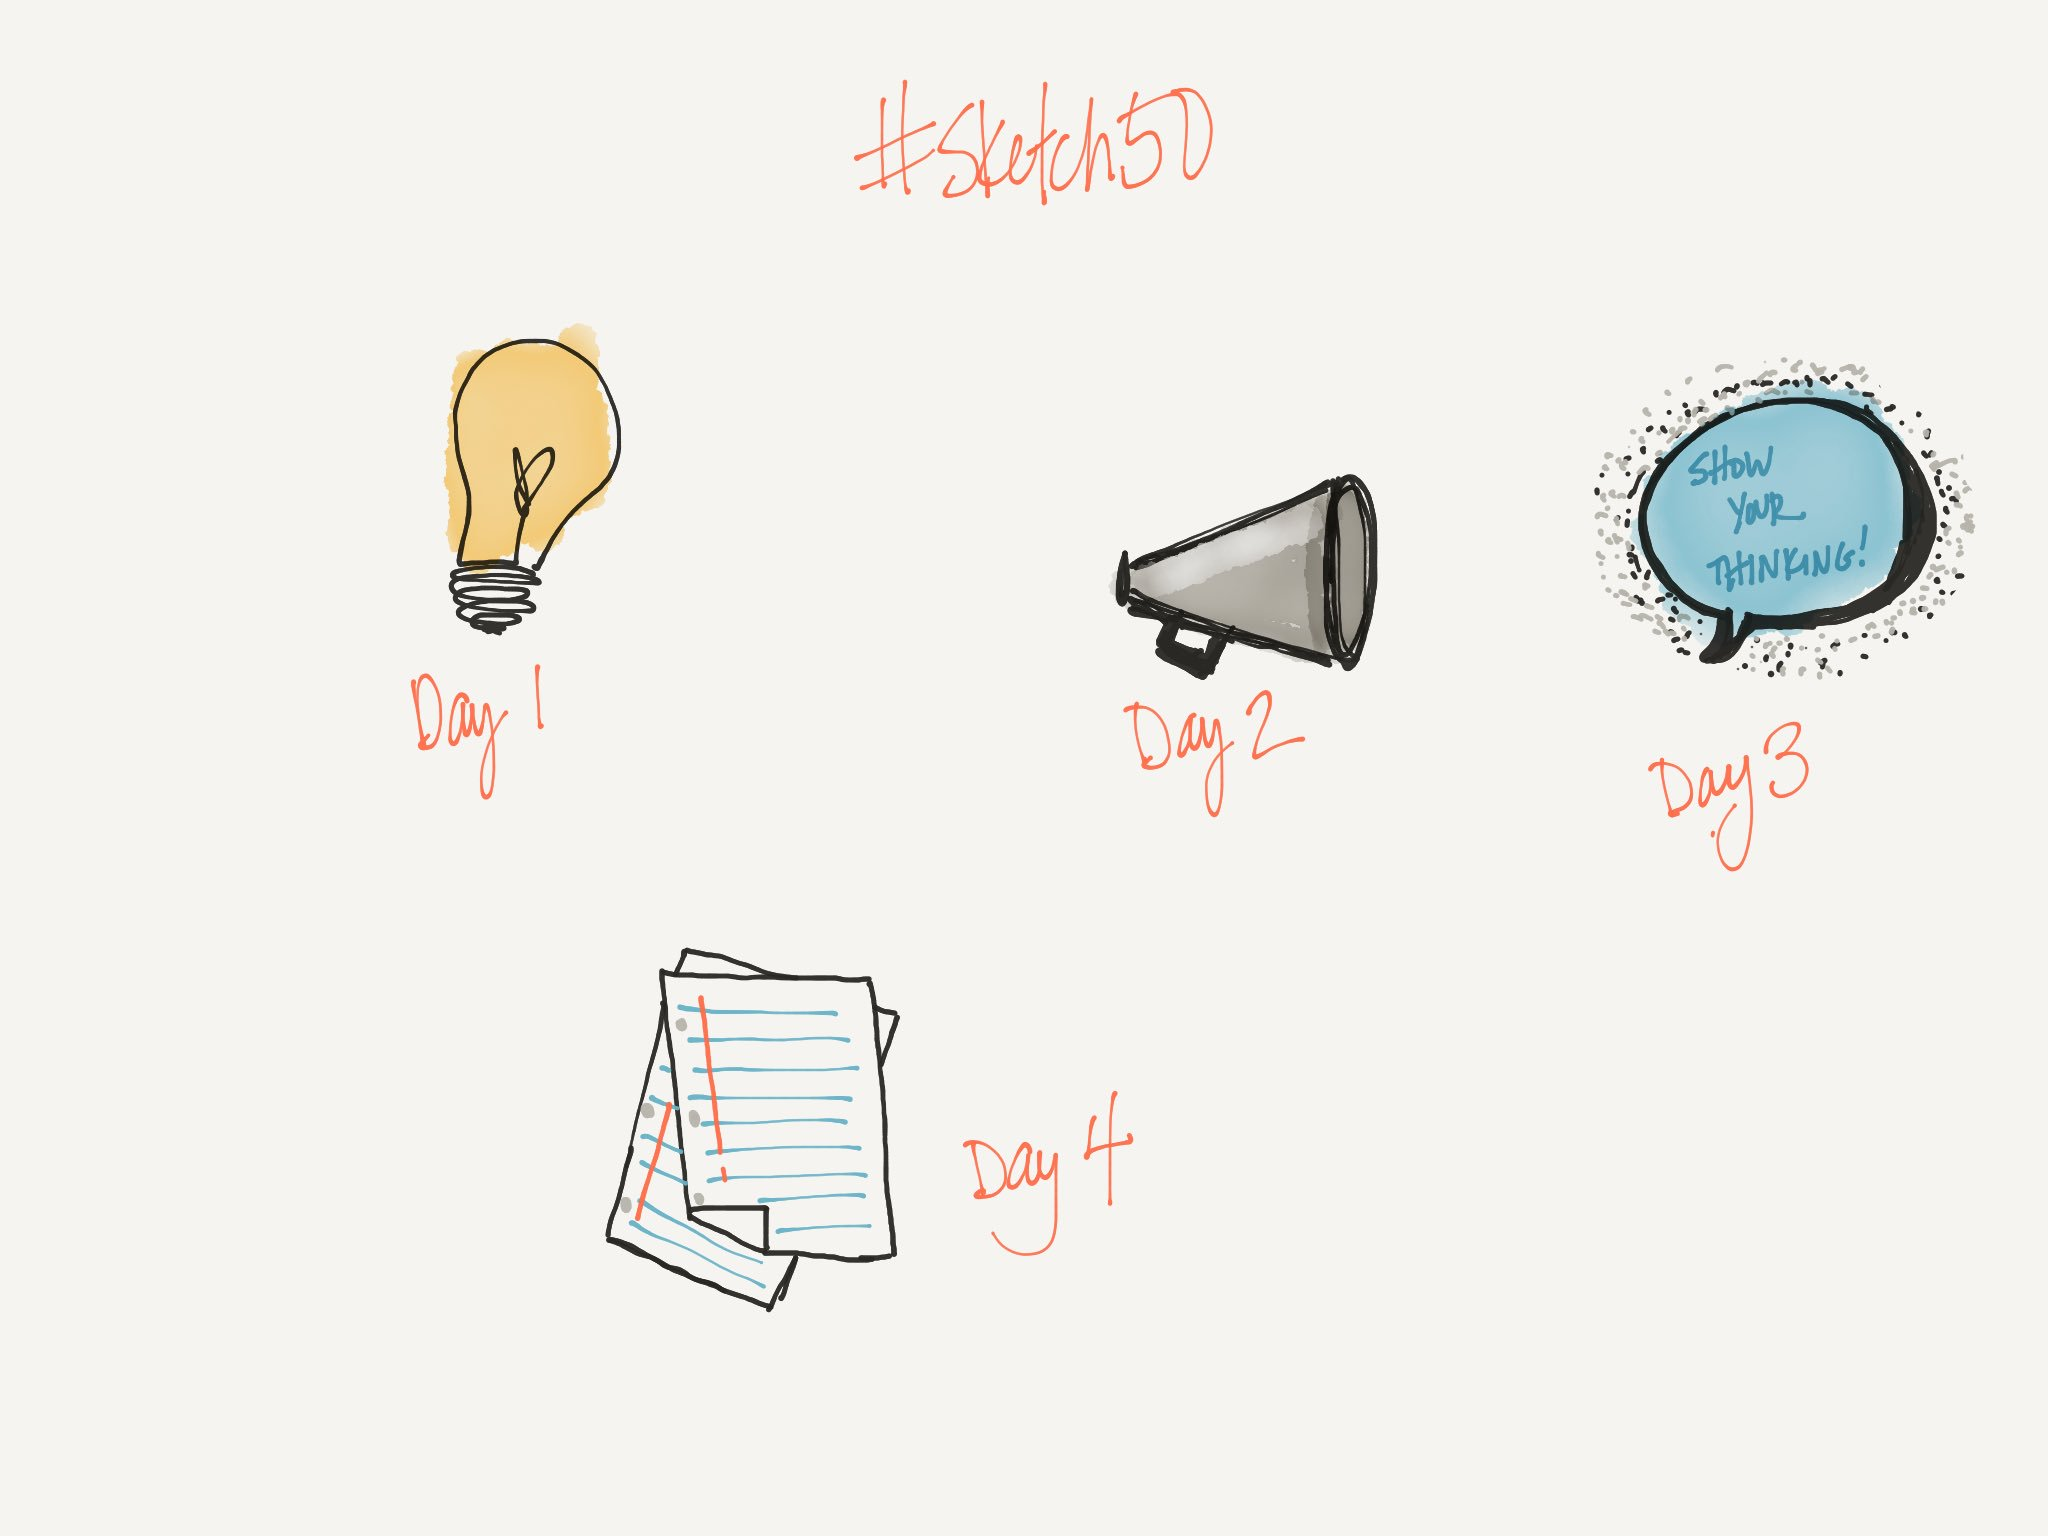 Day 4 of #sketch50 and I'm jumping in! Here's my Days 1-4! 😀 https://t.co/e2WfCmq4Mu